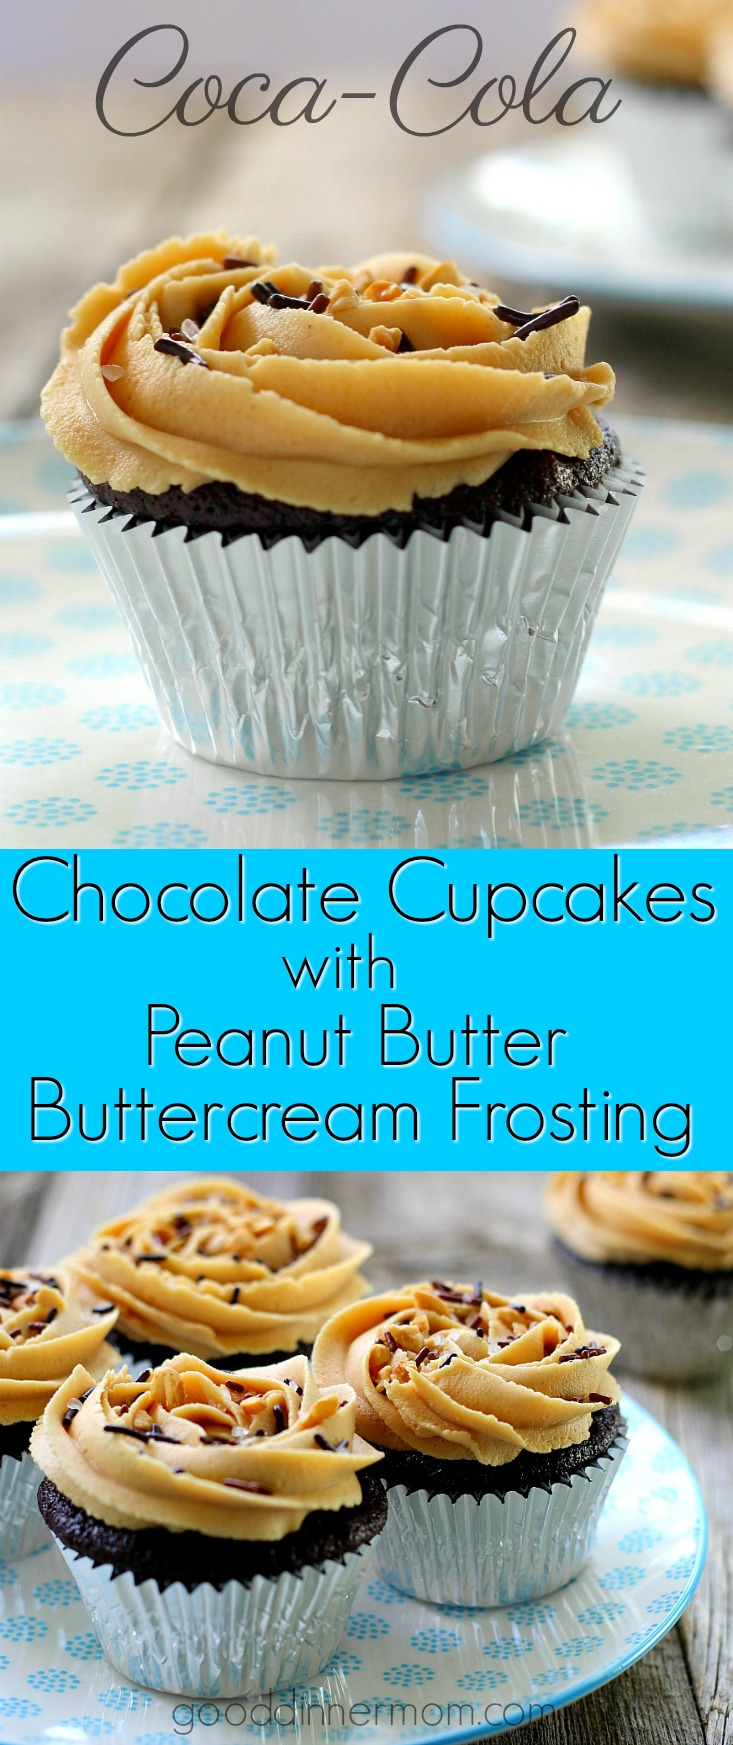 Chocolate Coca-Cola Cupcakes with Peanut Butter Buttercream Frosting #cupcakes #chocolate